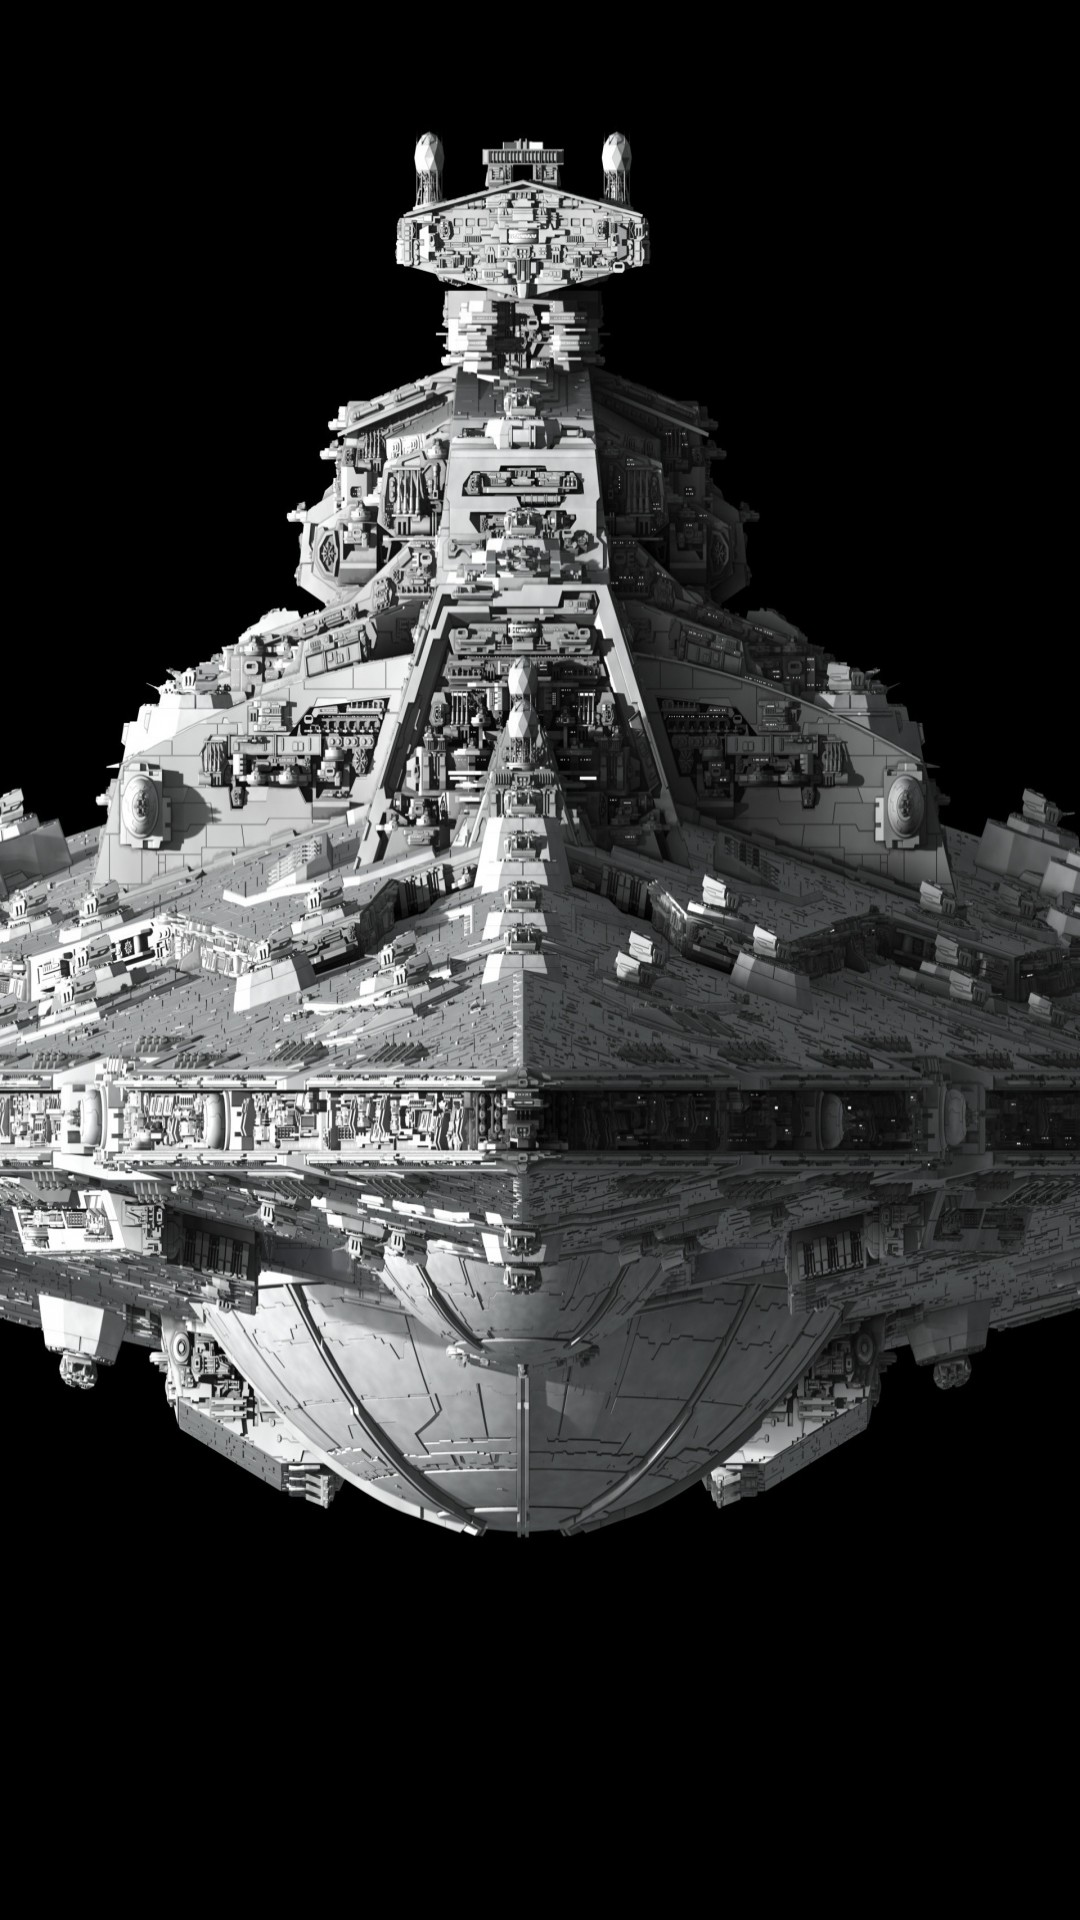 Star Wars Iphone 6 Wallpaper 89 Images